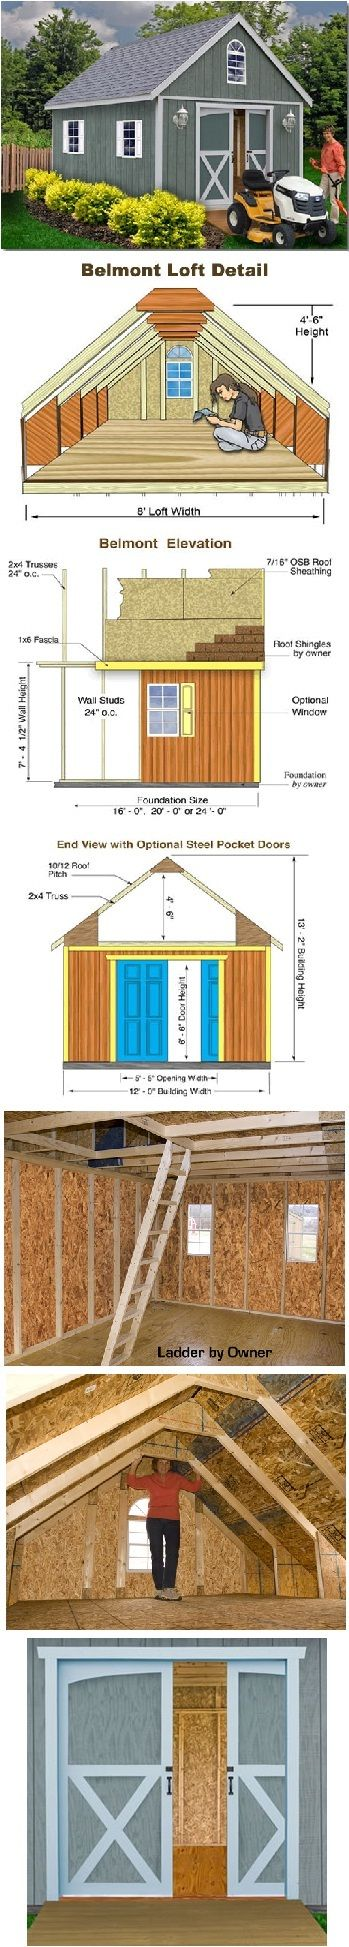 Belmont 12 ft x 16 ft Best Barn Wood Shed Kit